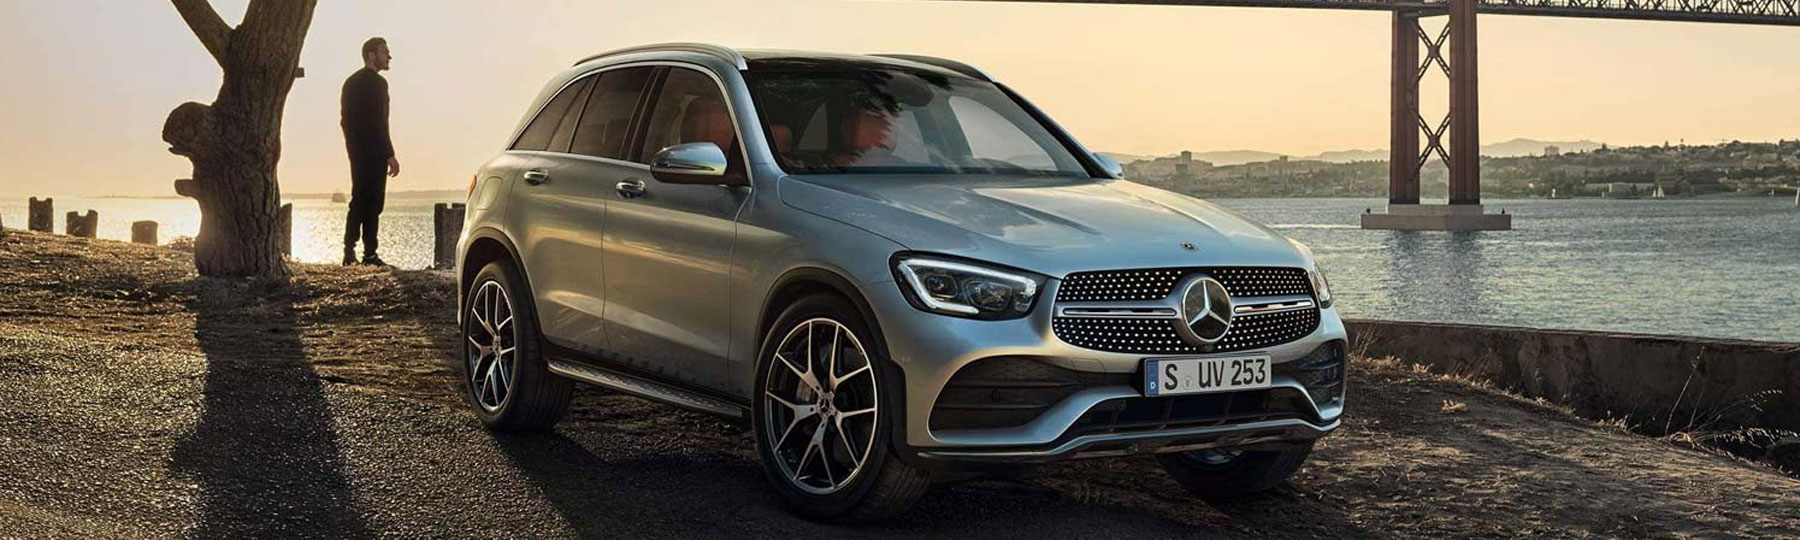 Mercedes-Benz Glc Business Contract Hire Offer